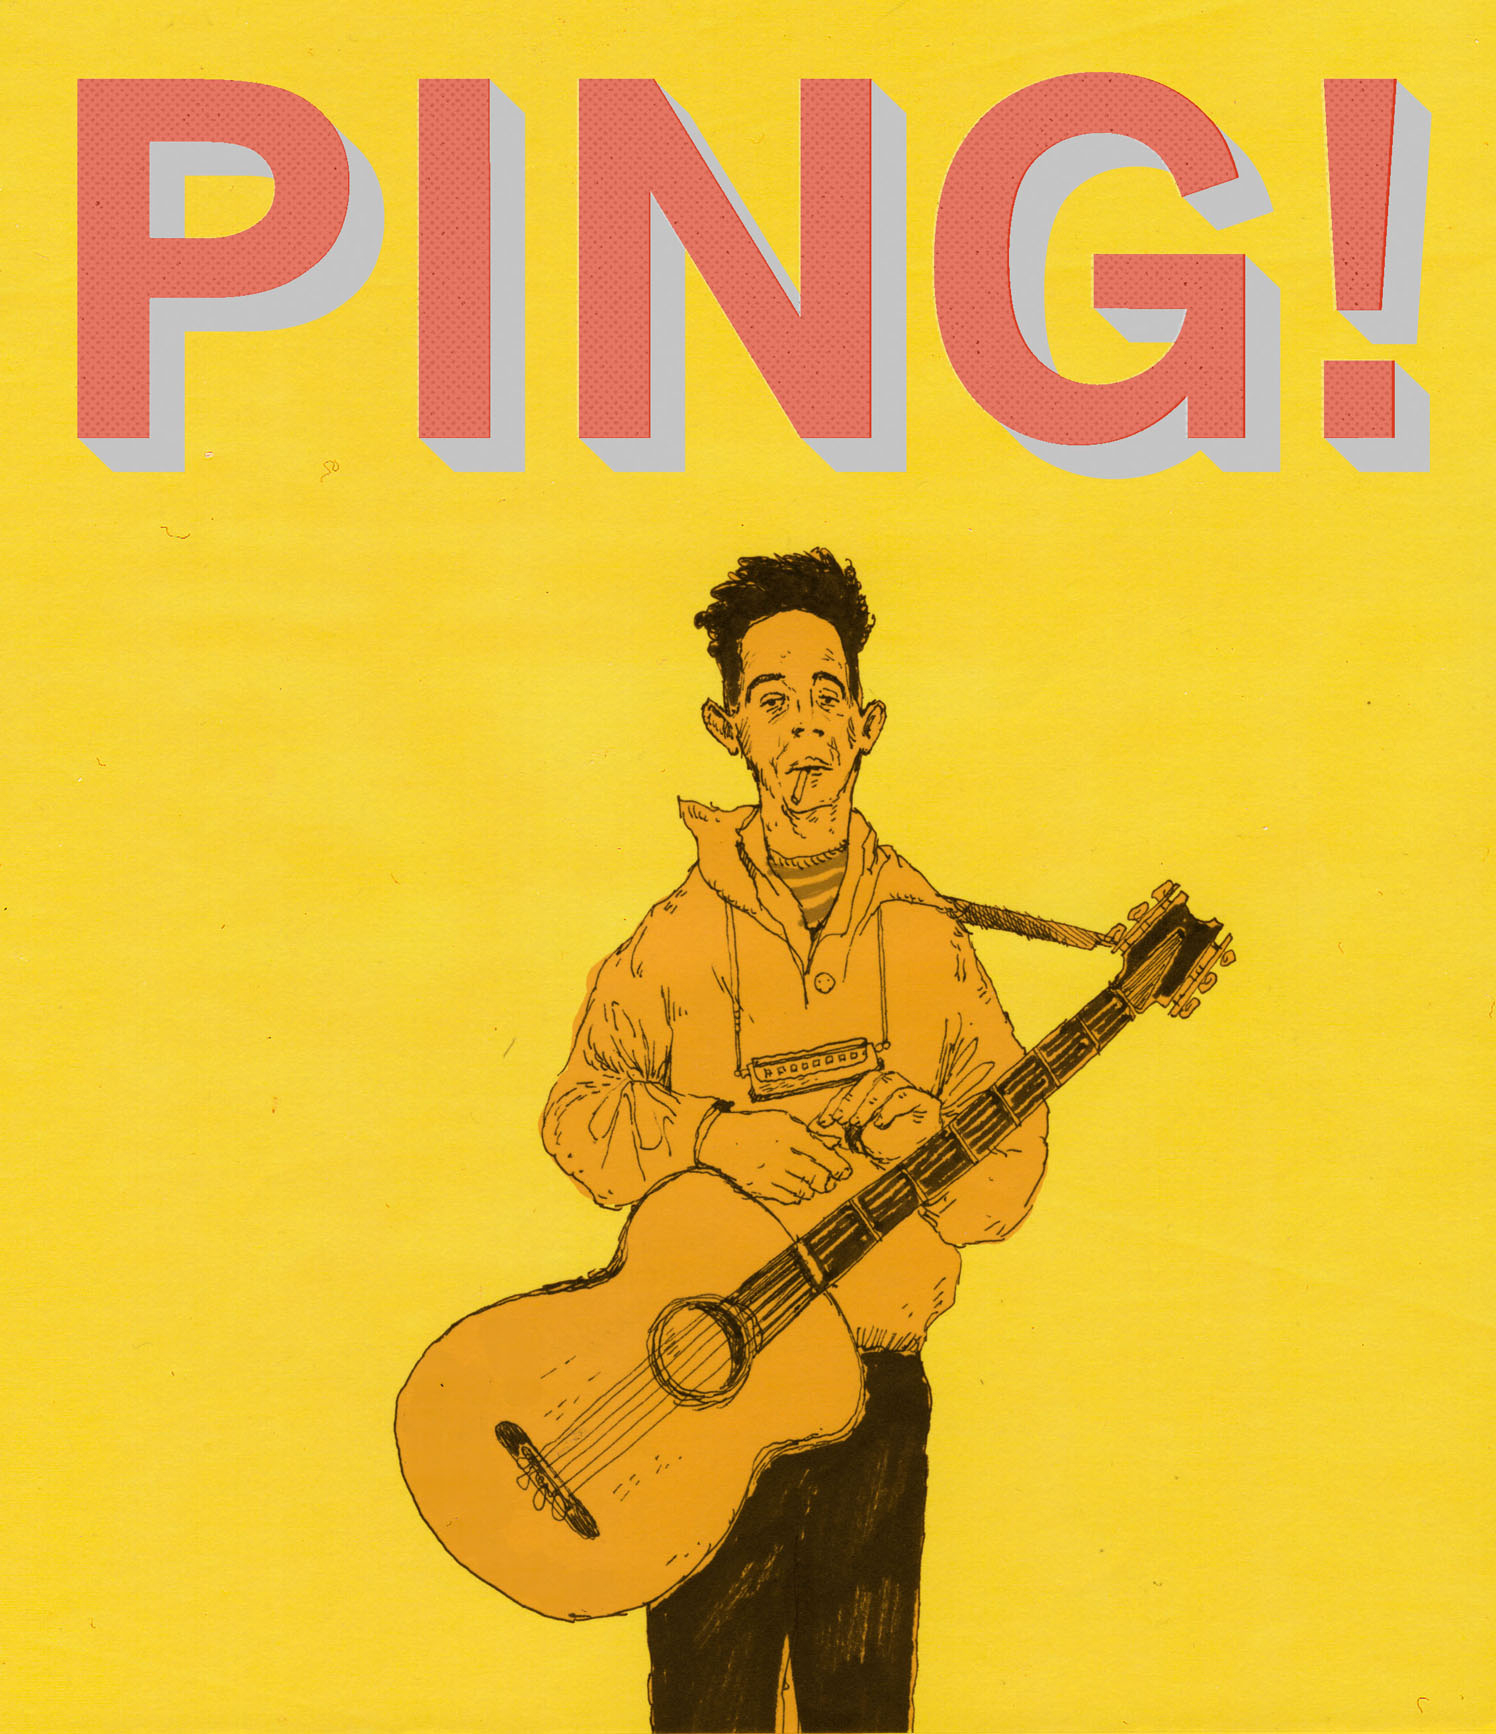 Guthrie Ping!